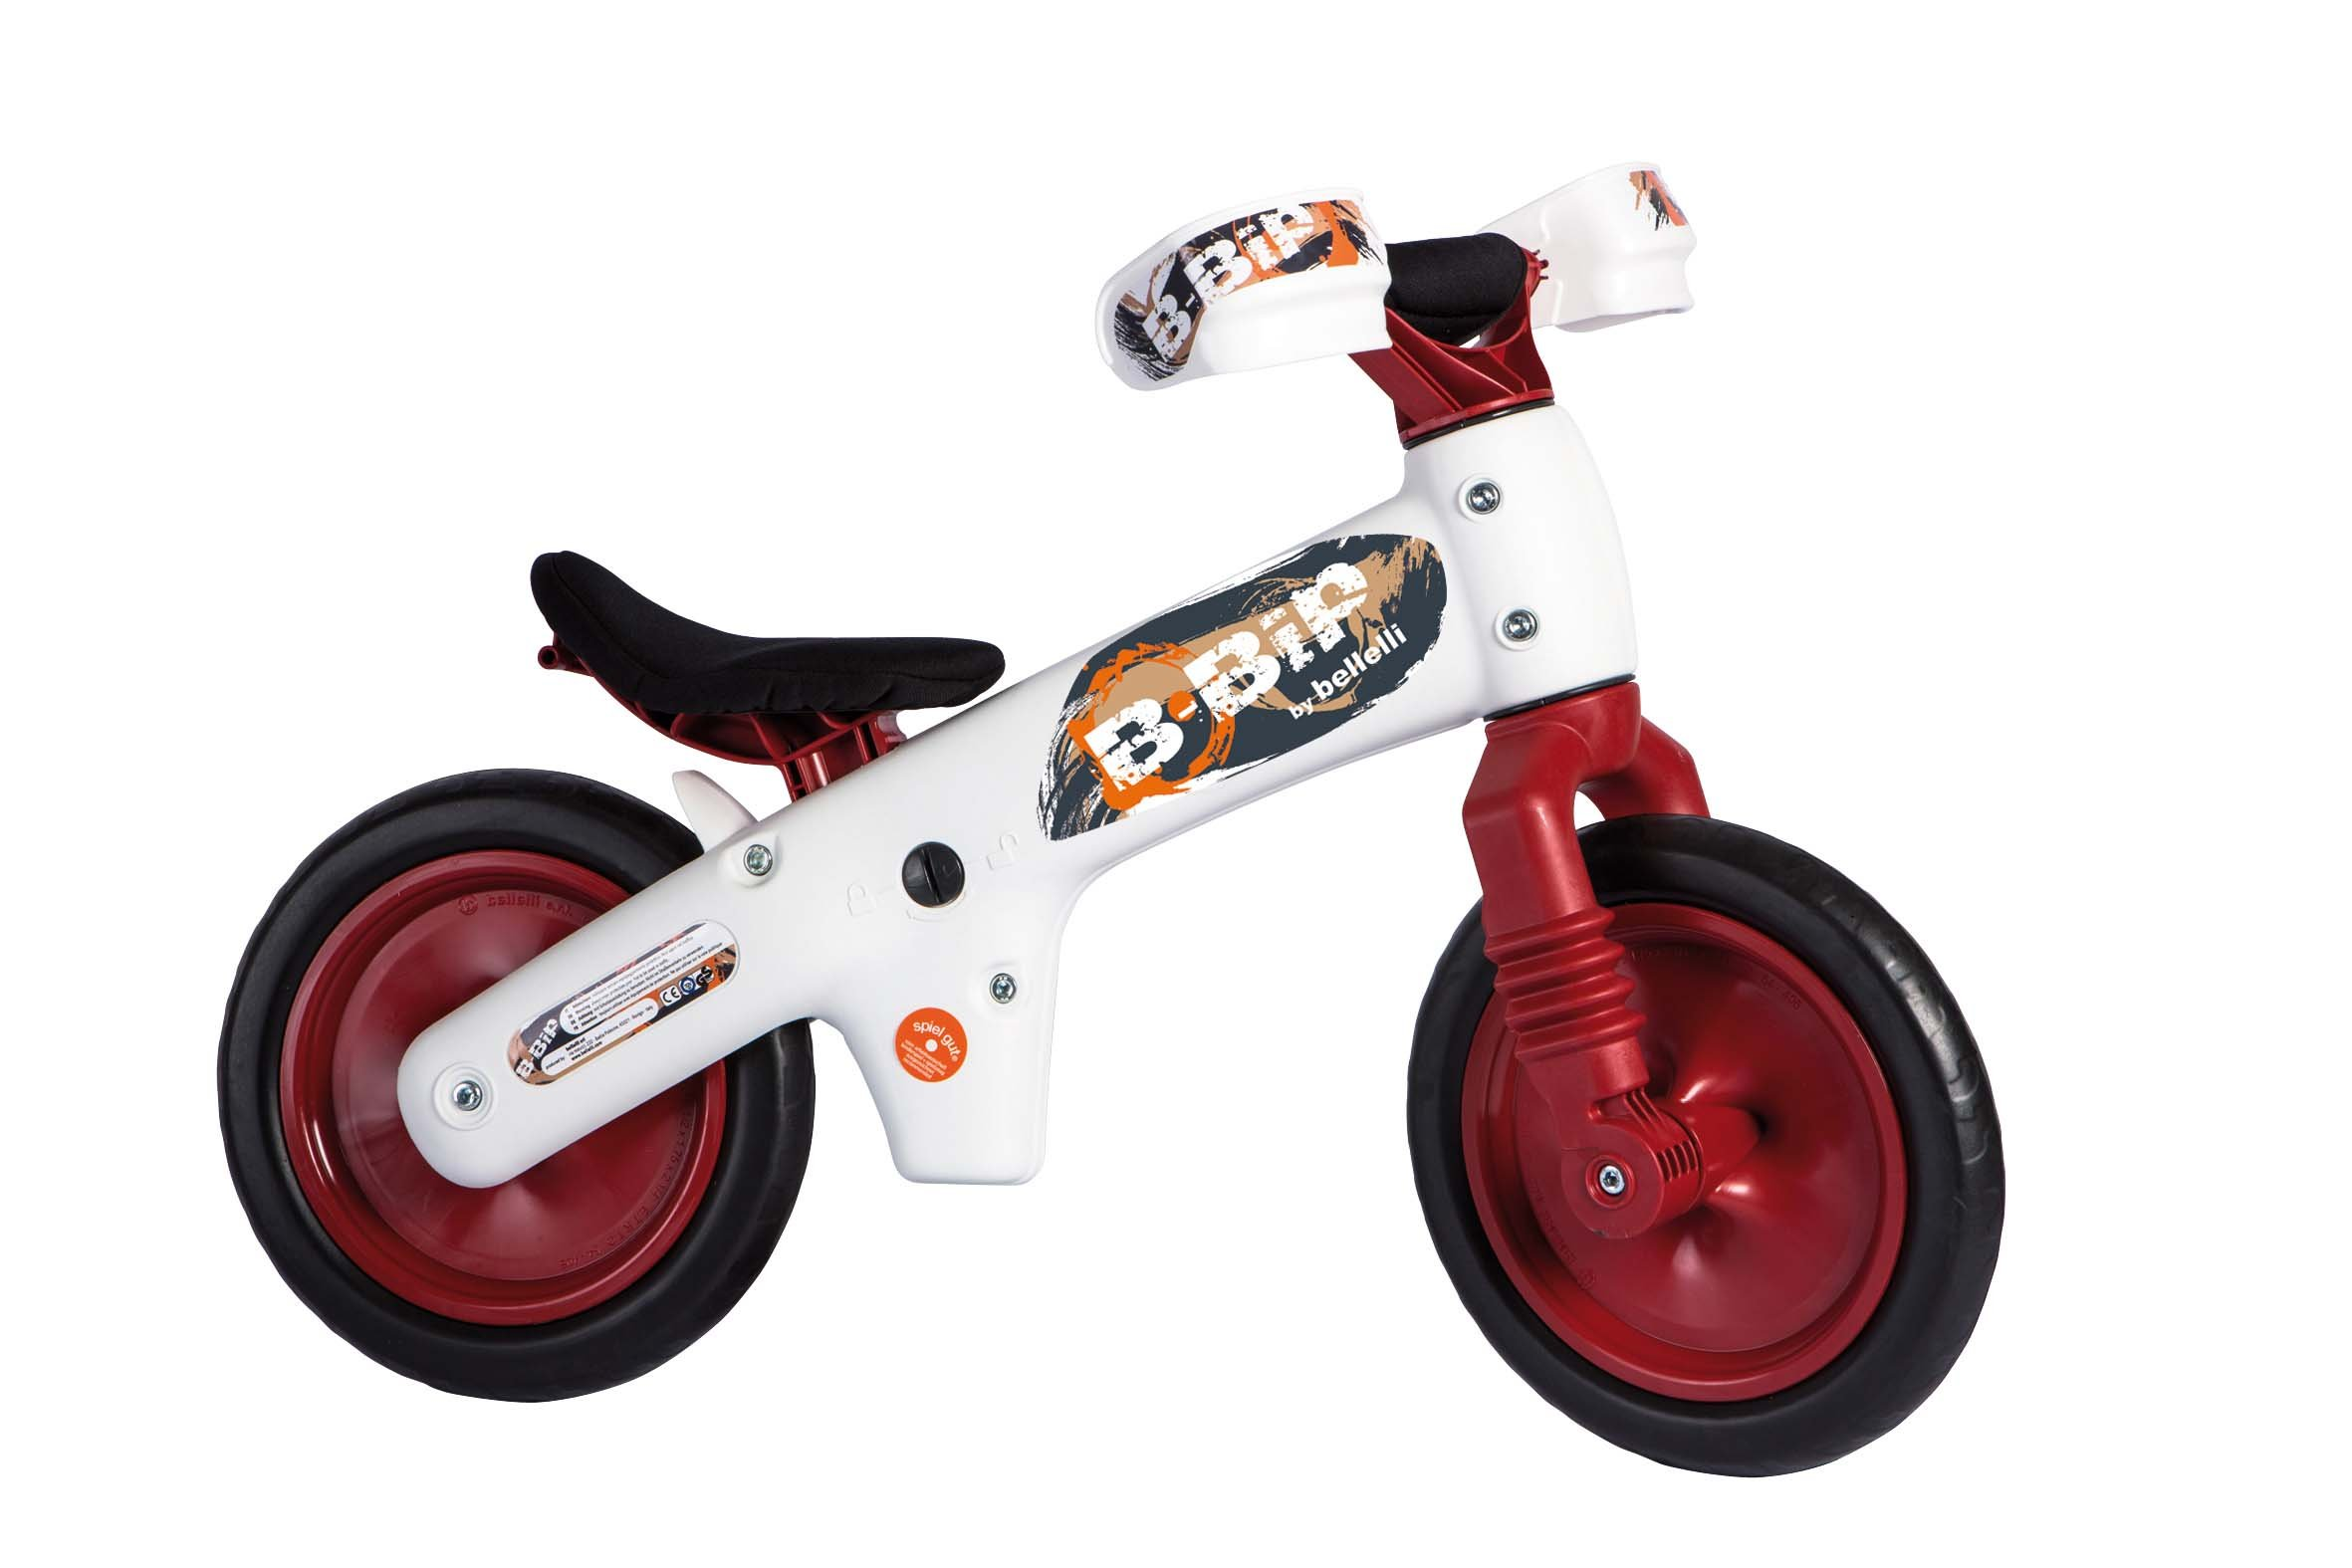 Bellelli Balance Bike with Adjustable Seat - for Ages 2 to 5 years (Red)